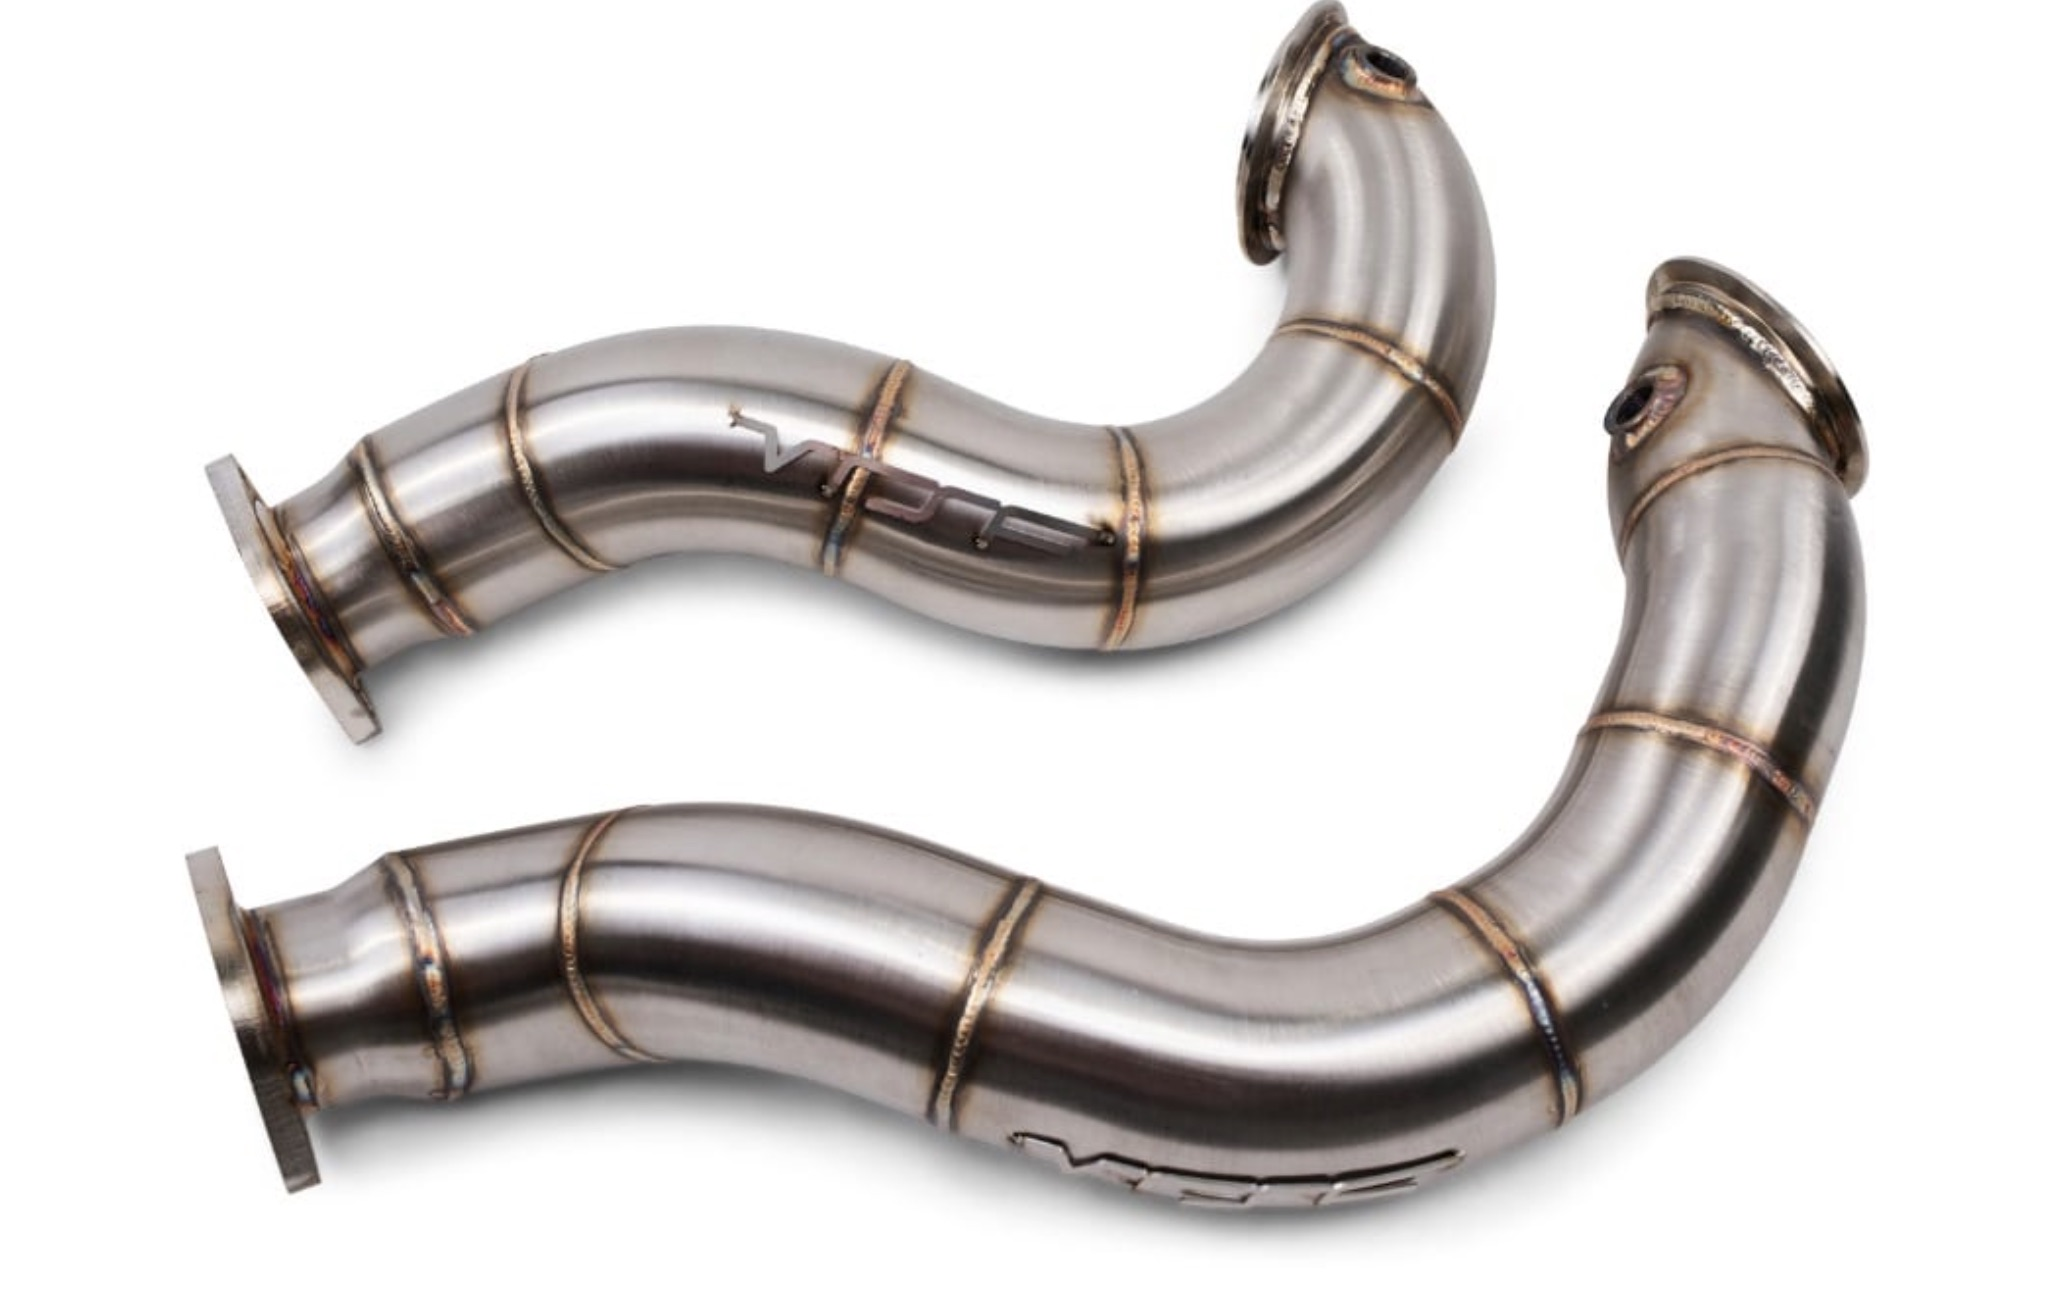 Vrsf 3 Race Downpipes N54 2009 2016 E89 Bmw Z4 35i 35is N54tuning Com